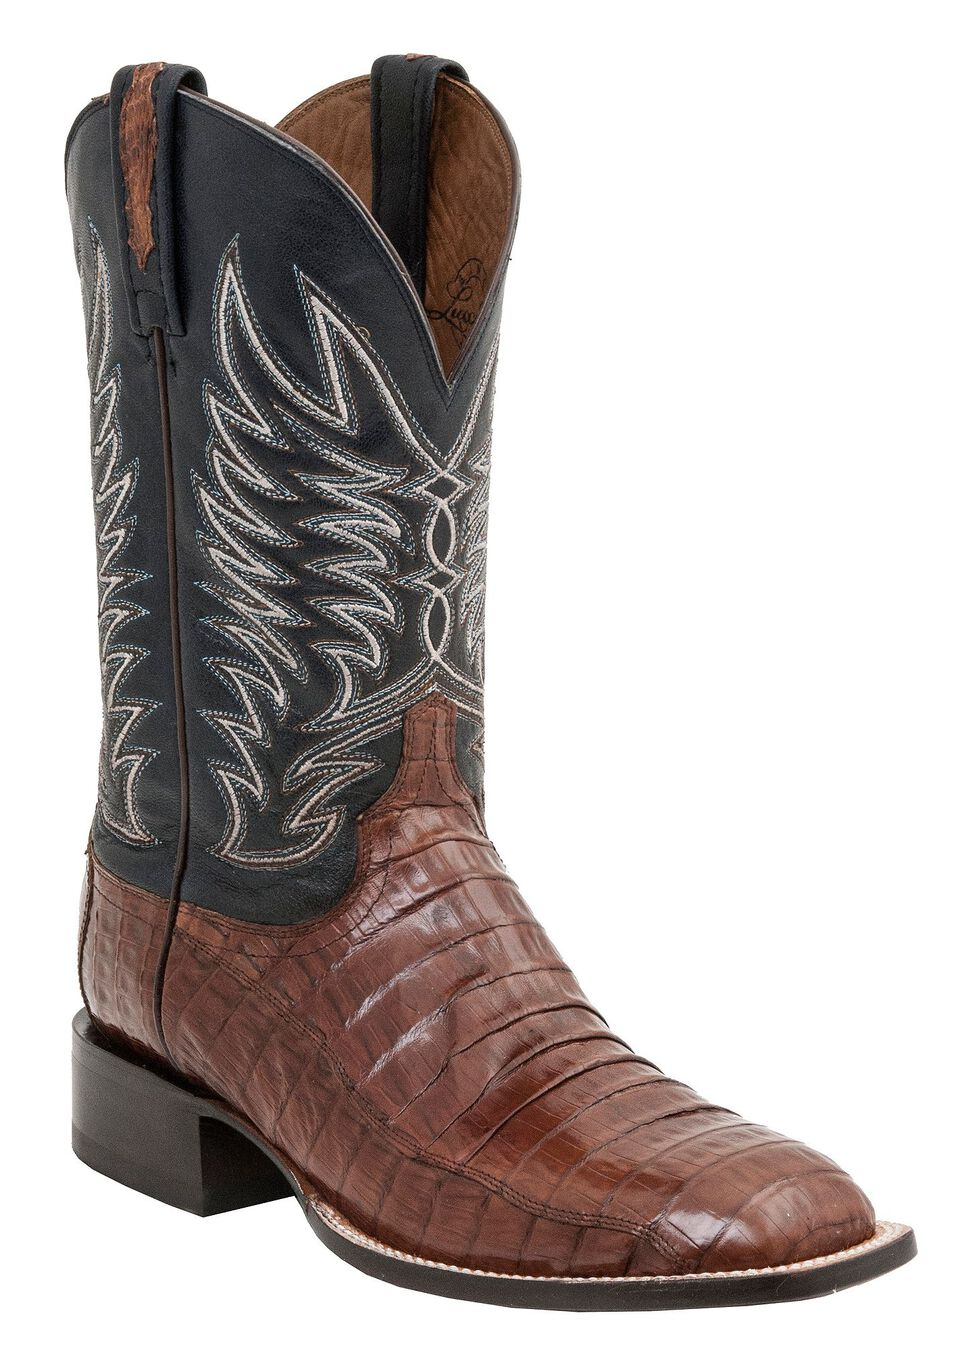 Lucchese 1883 Logan Caiman Belly Cowboy Boots - Crepe Sole, Sienna, hi-res